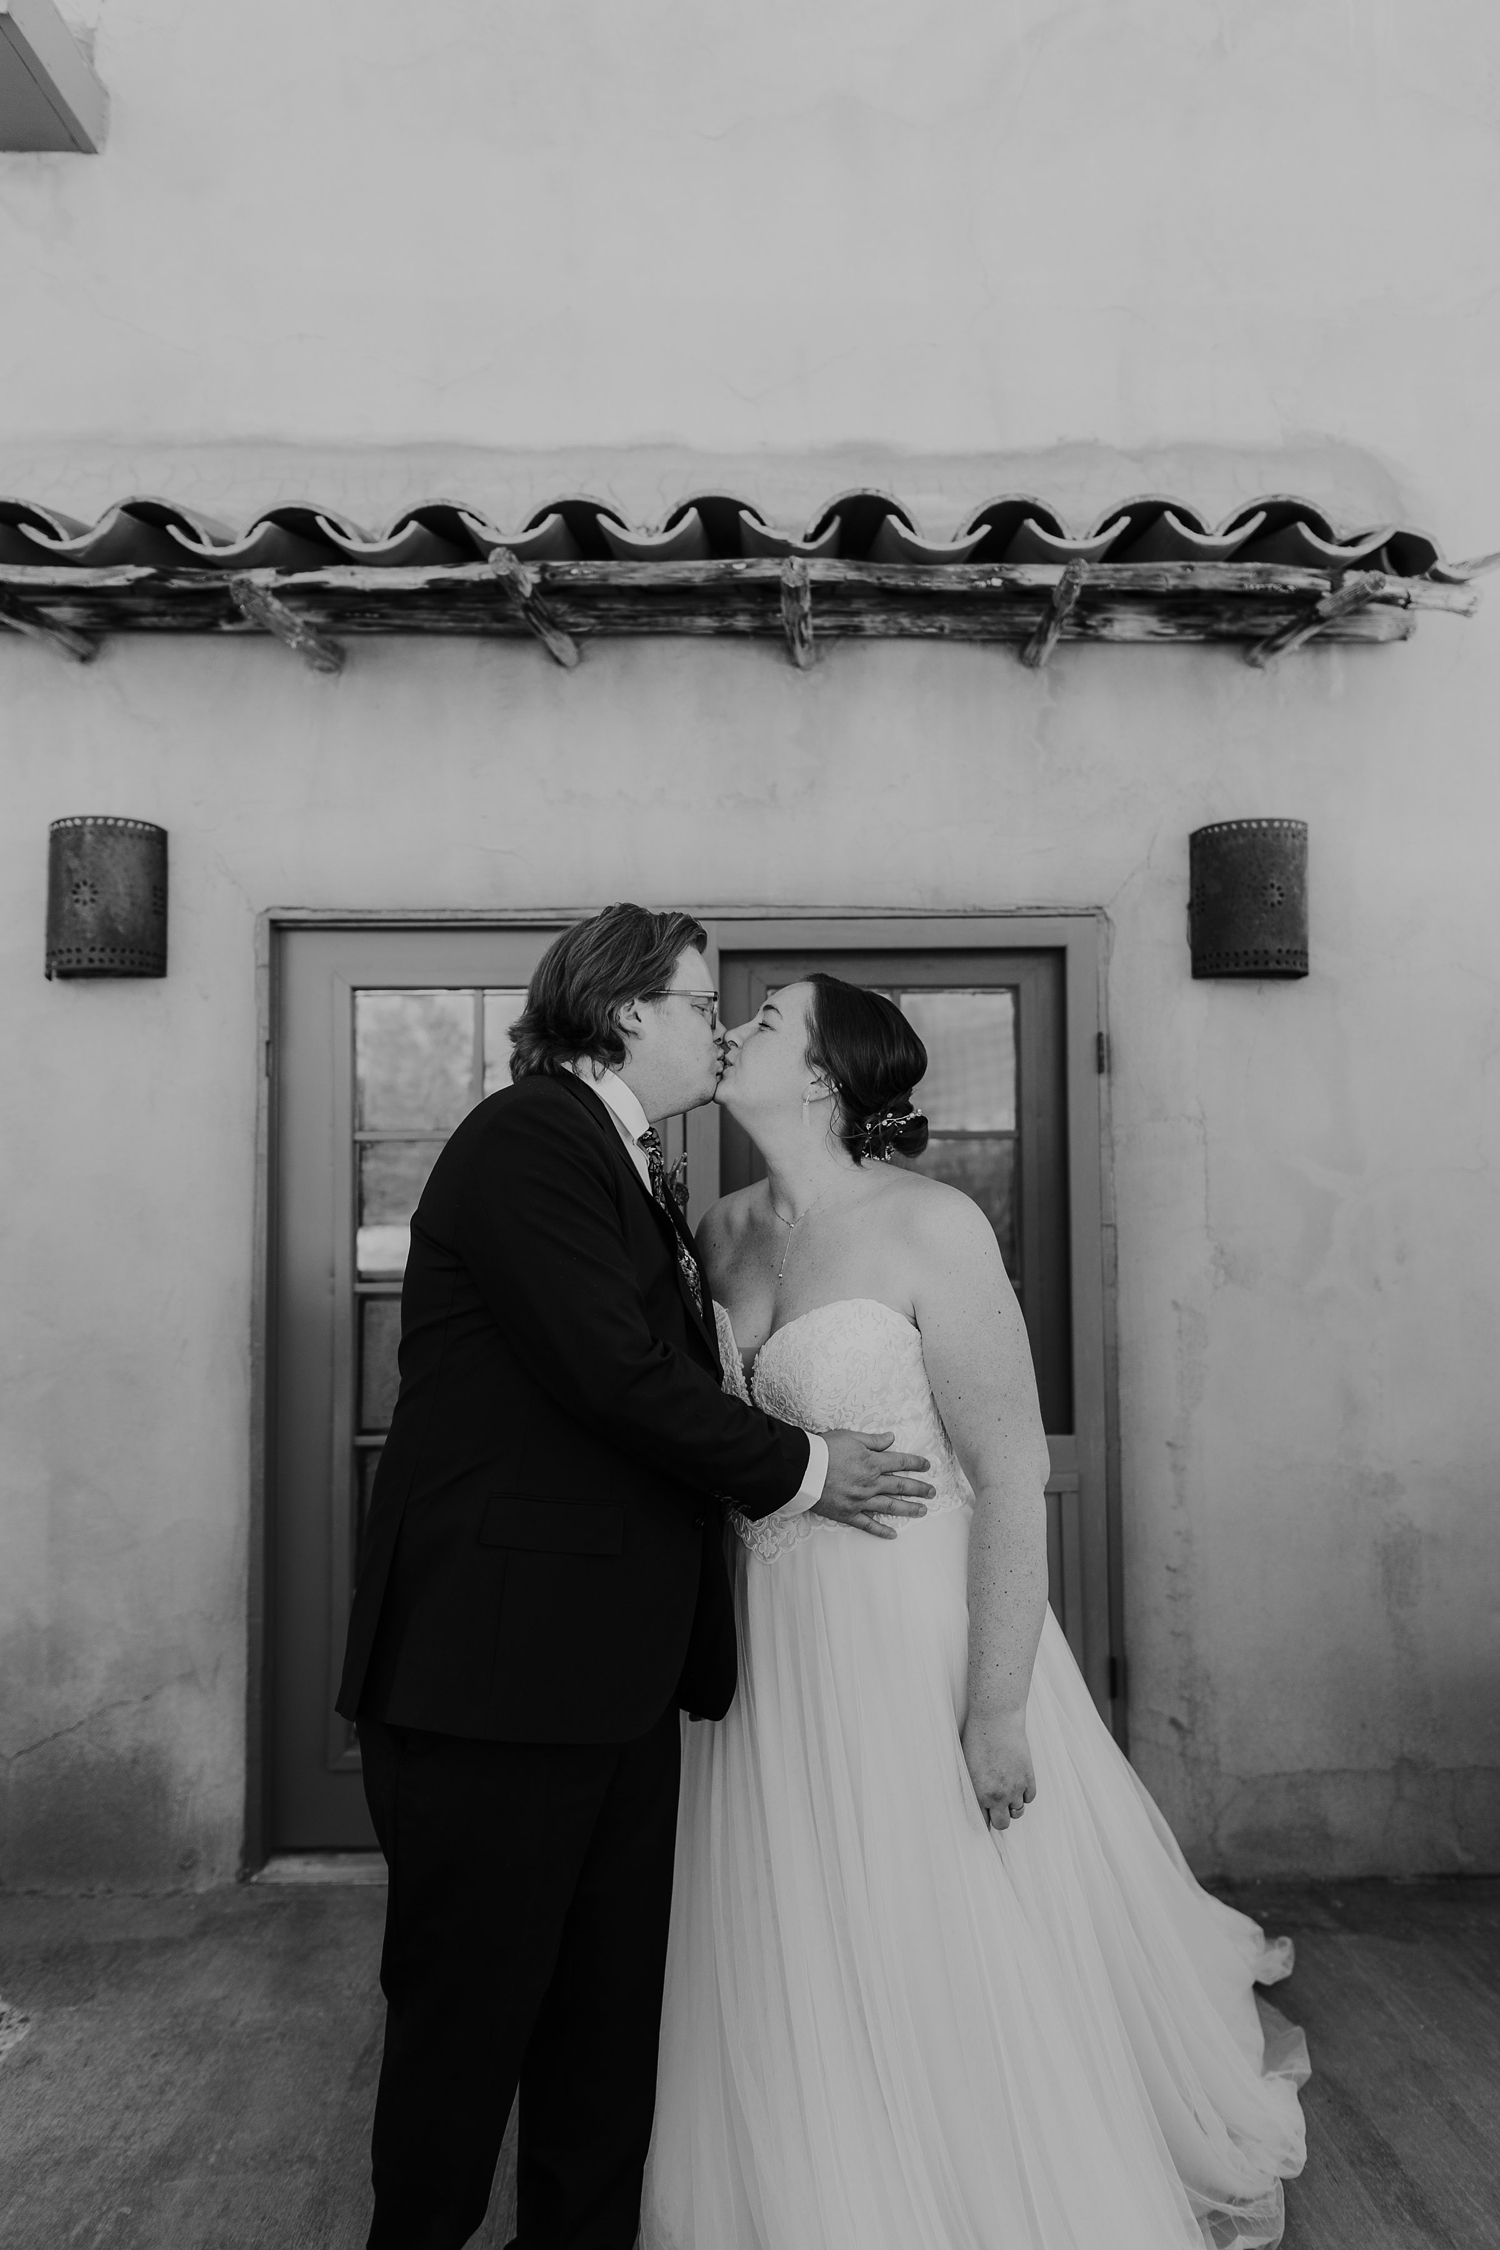 Alicia+lucia+photography+-+albuquerque+wedding+photographer+-+santa+fe+wedding+photography+-+new+mexico+wedding+photographer+-+hacienda+dona+andrea+wedding+-+destination+wedding+-+new+york+couple_0045.jpg